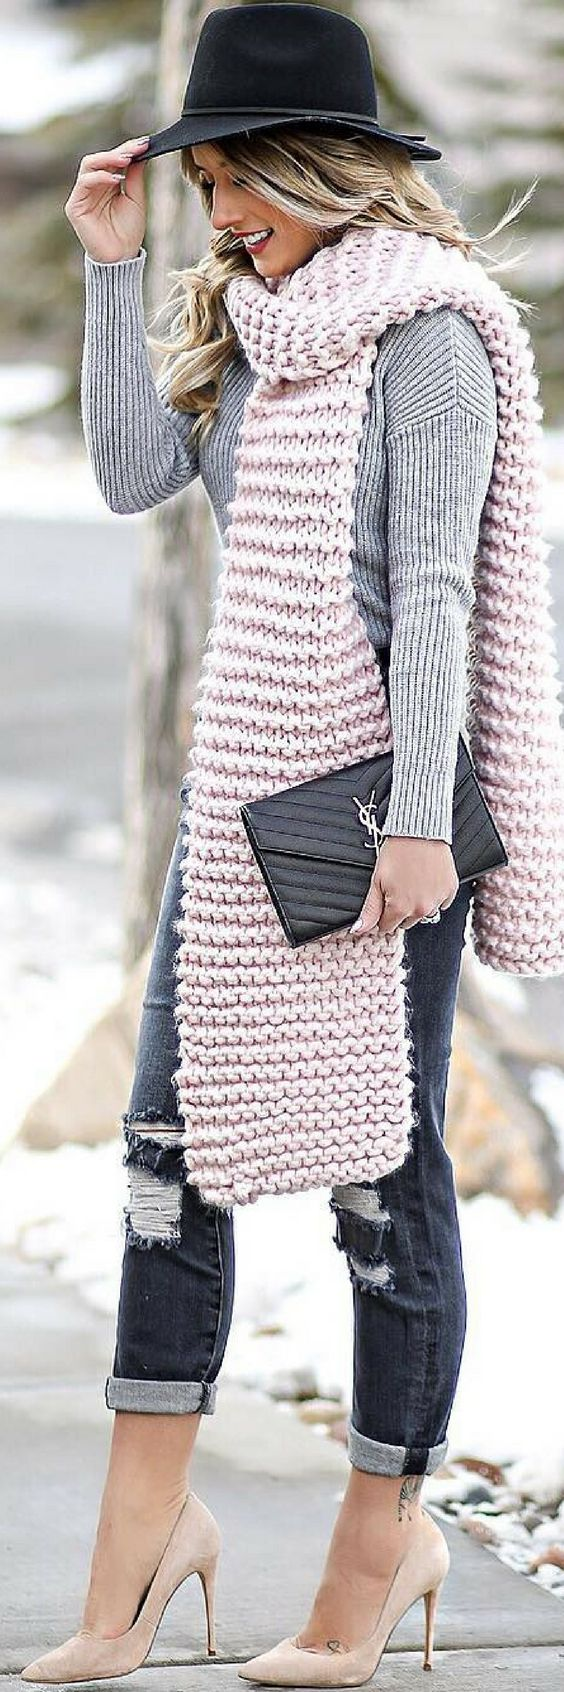 How To Style 7 Of The Most Amazing Winter Outfits https://ecstasymodels.blog/2017/12/15/style-7-amazing-winter-outfits/